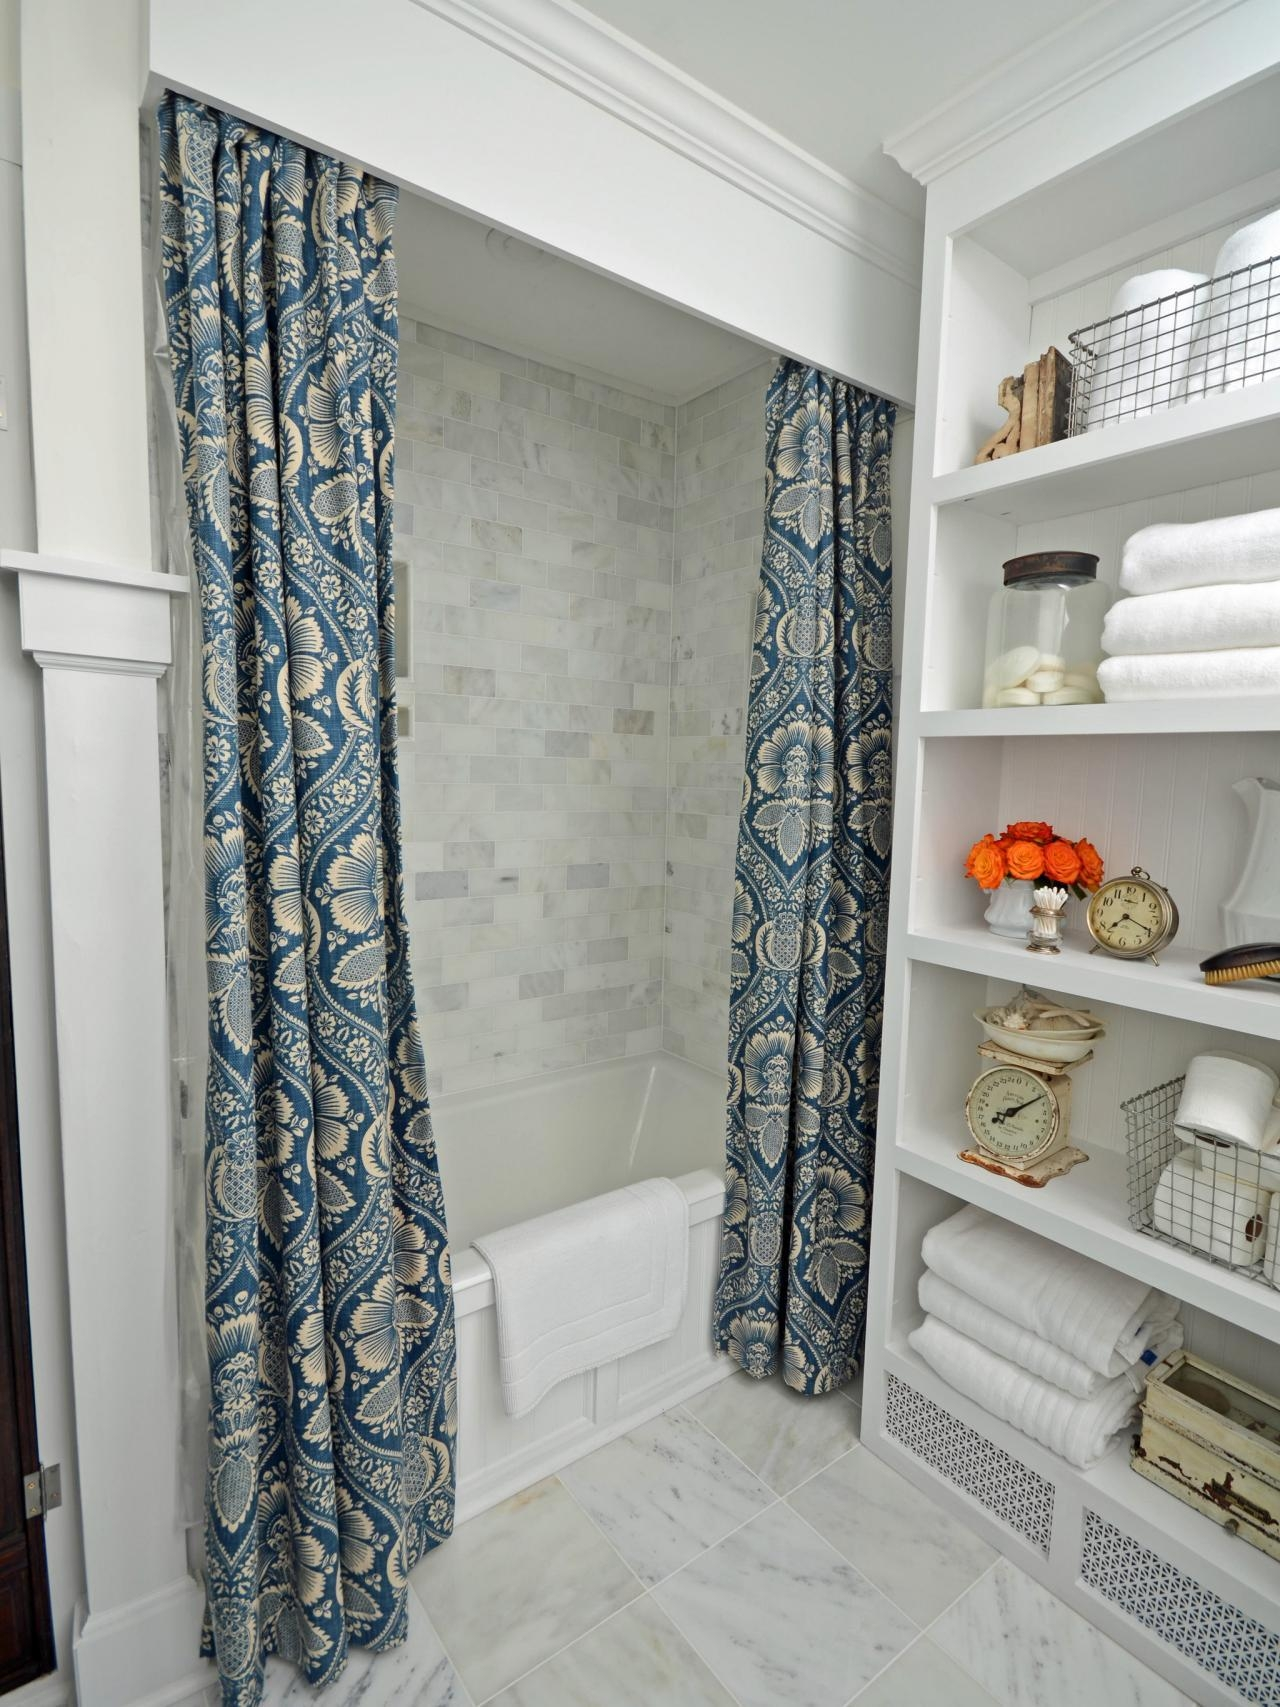 Double Panel Shower Curtains Throughout Double Panel Shower Curtains (View 4 of 25)